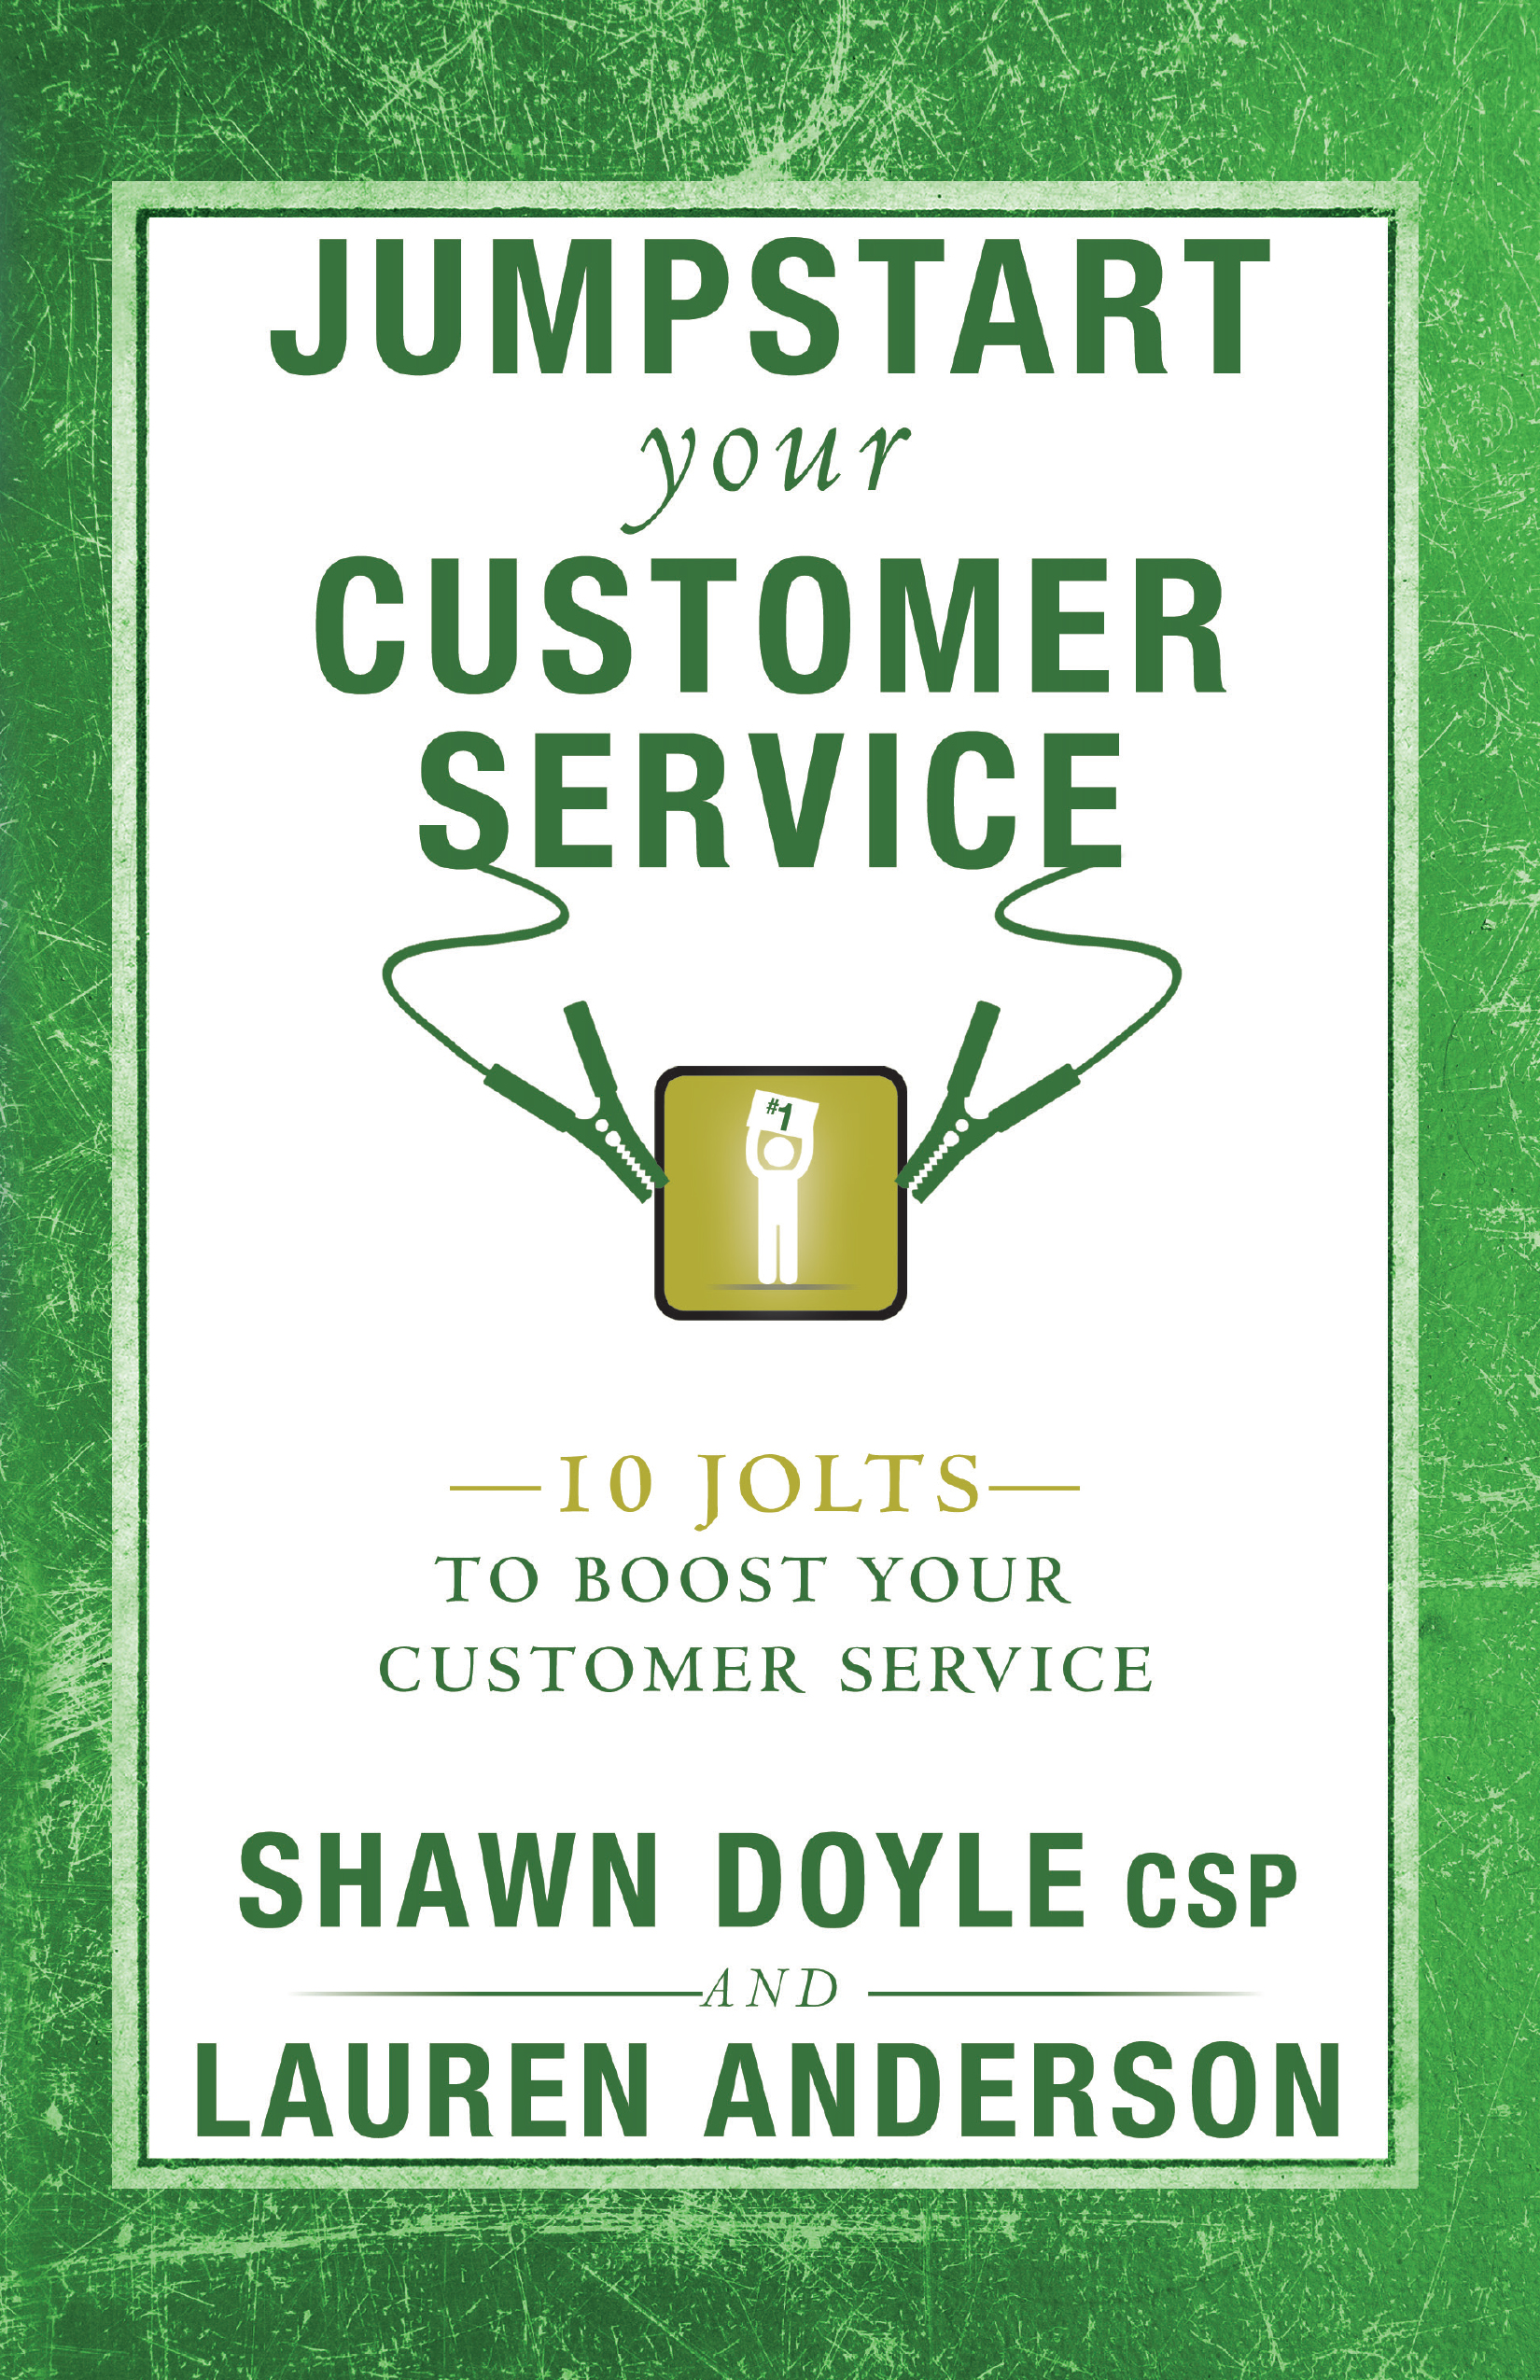 Jumpstart Your Customer Service - By shawn doyle csp & lauren anderson